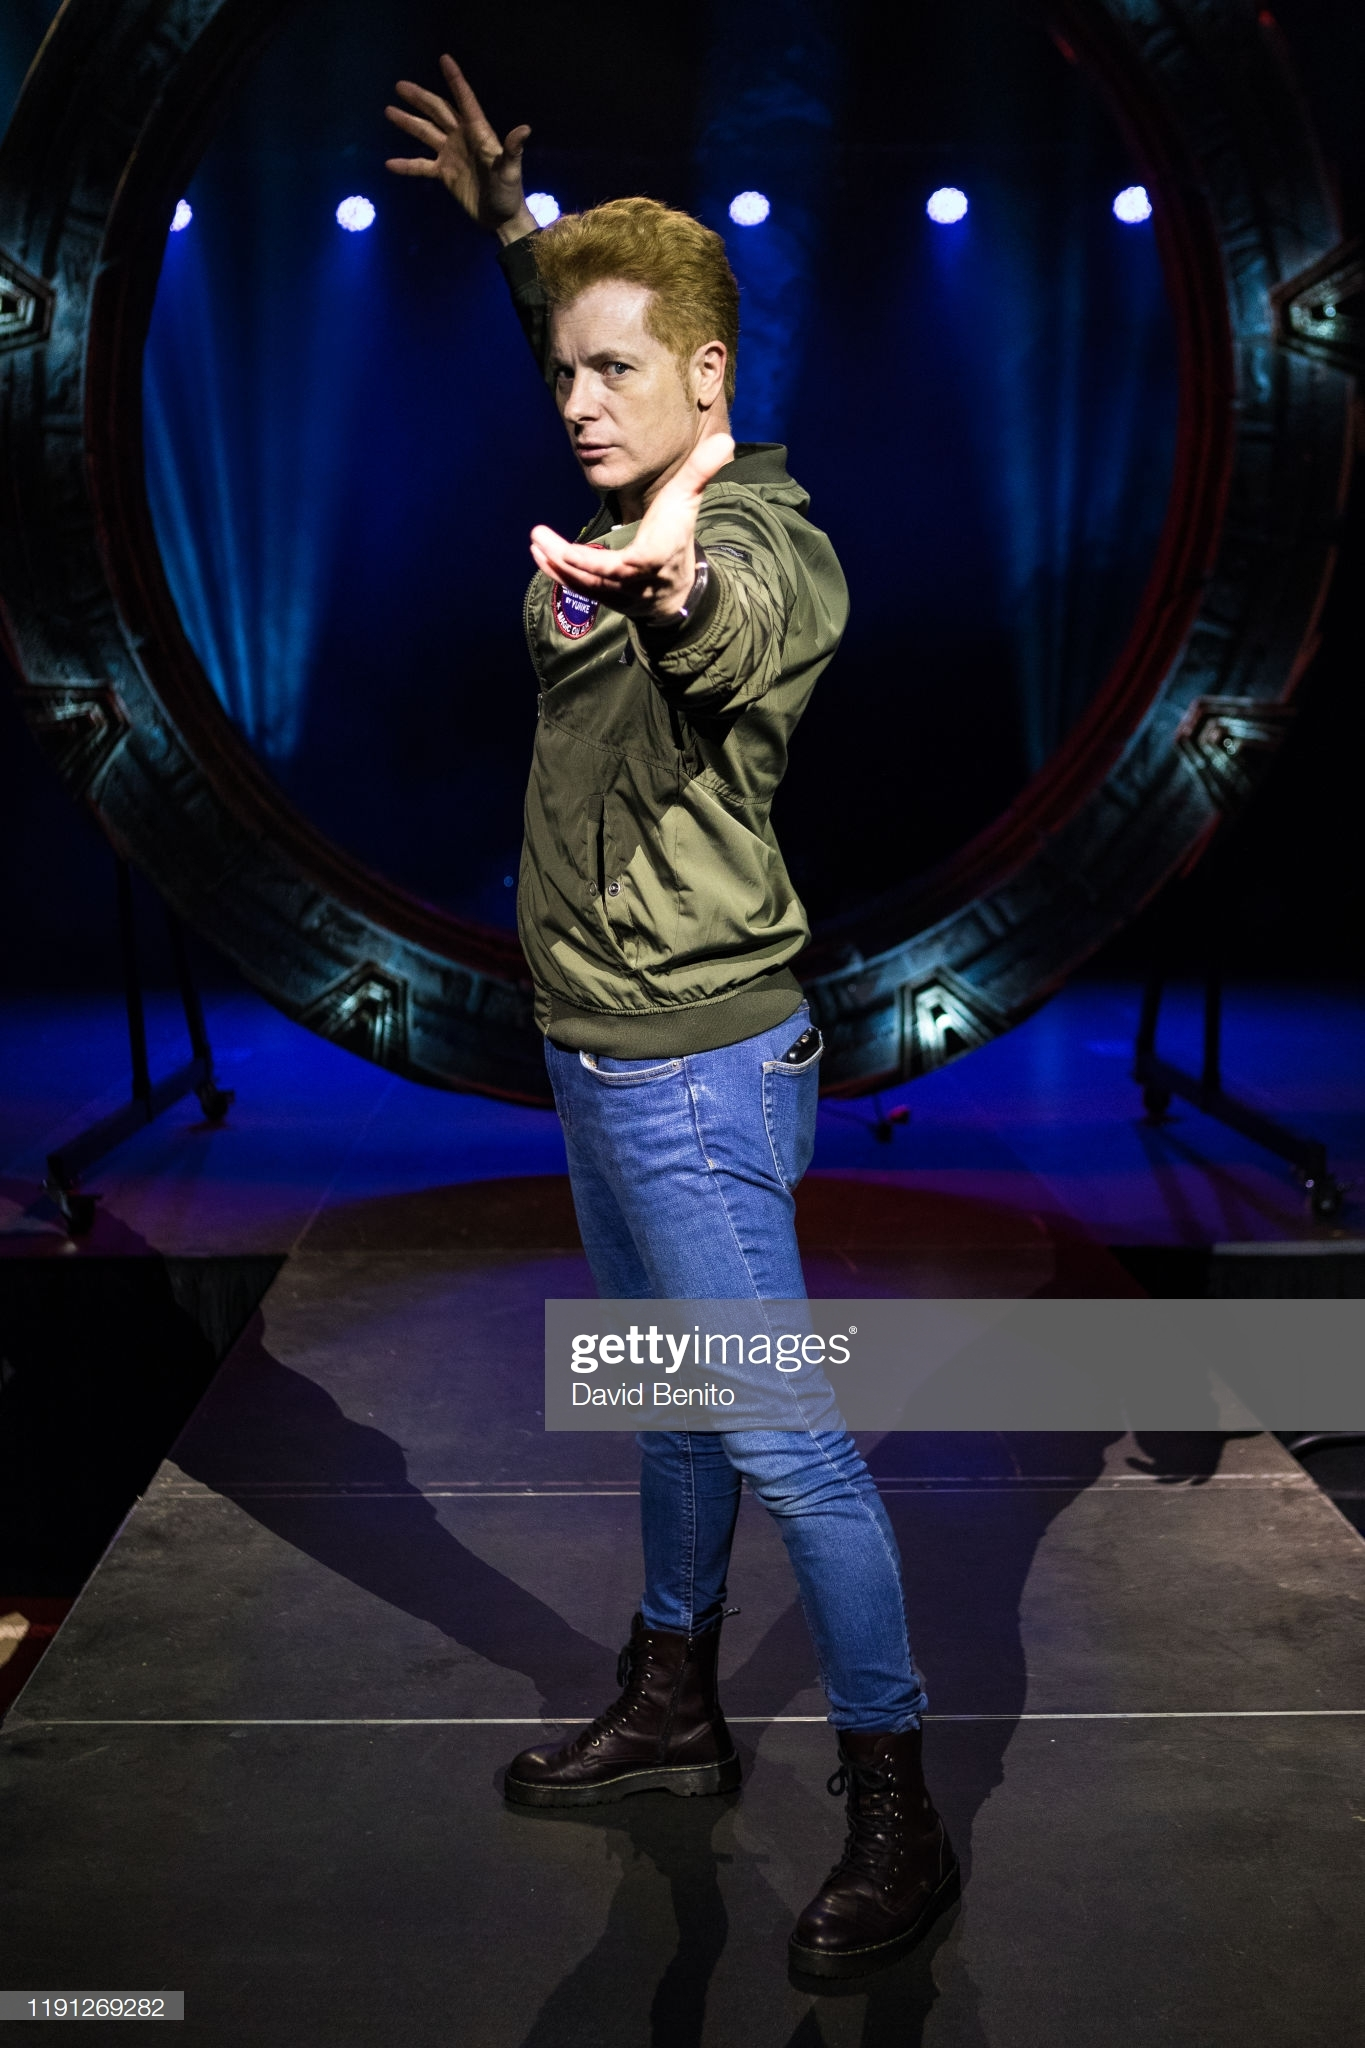 gettyimages-1191269282-2048x2048